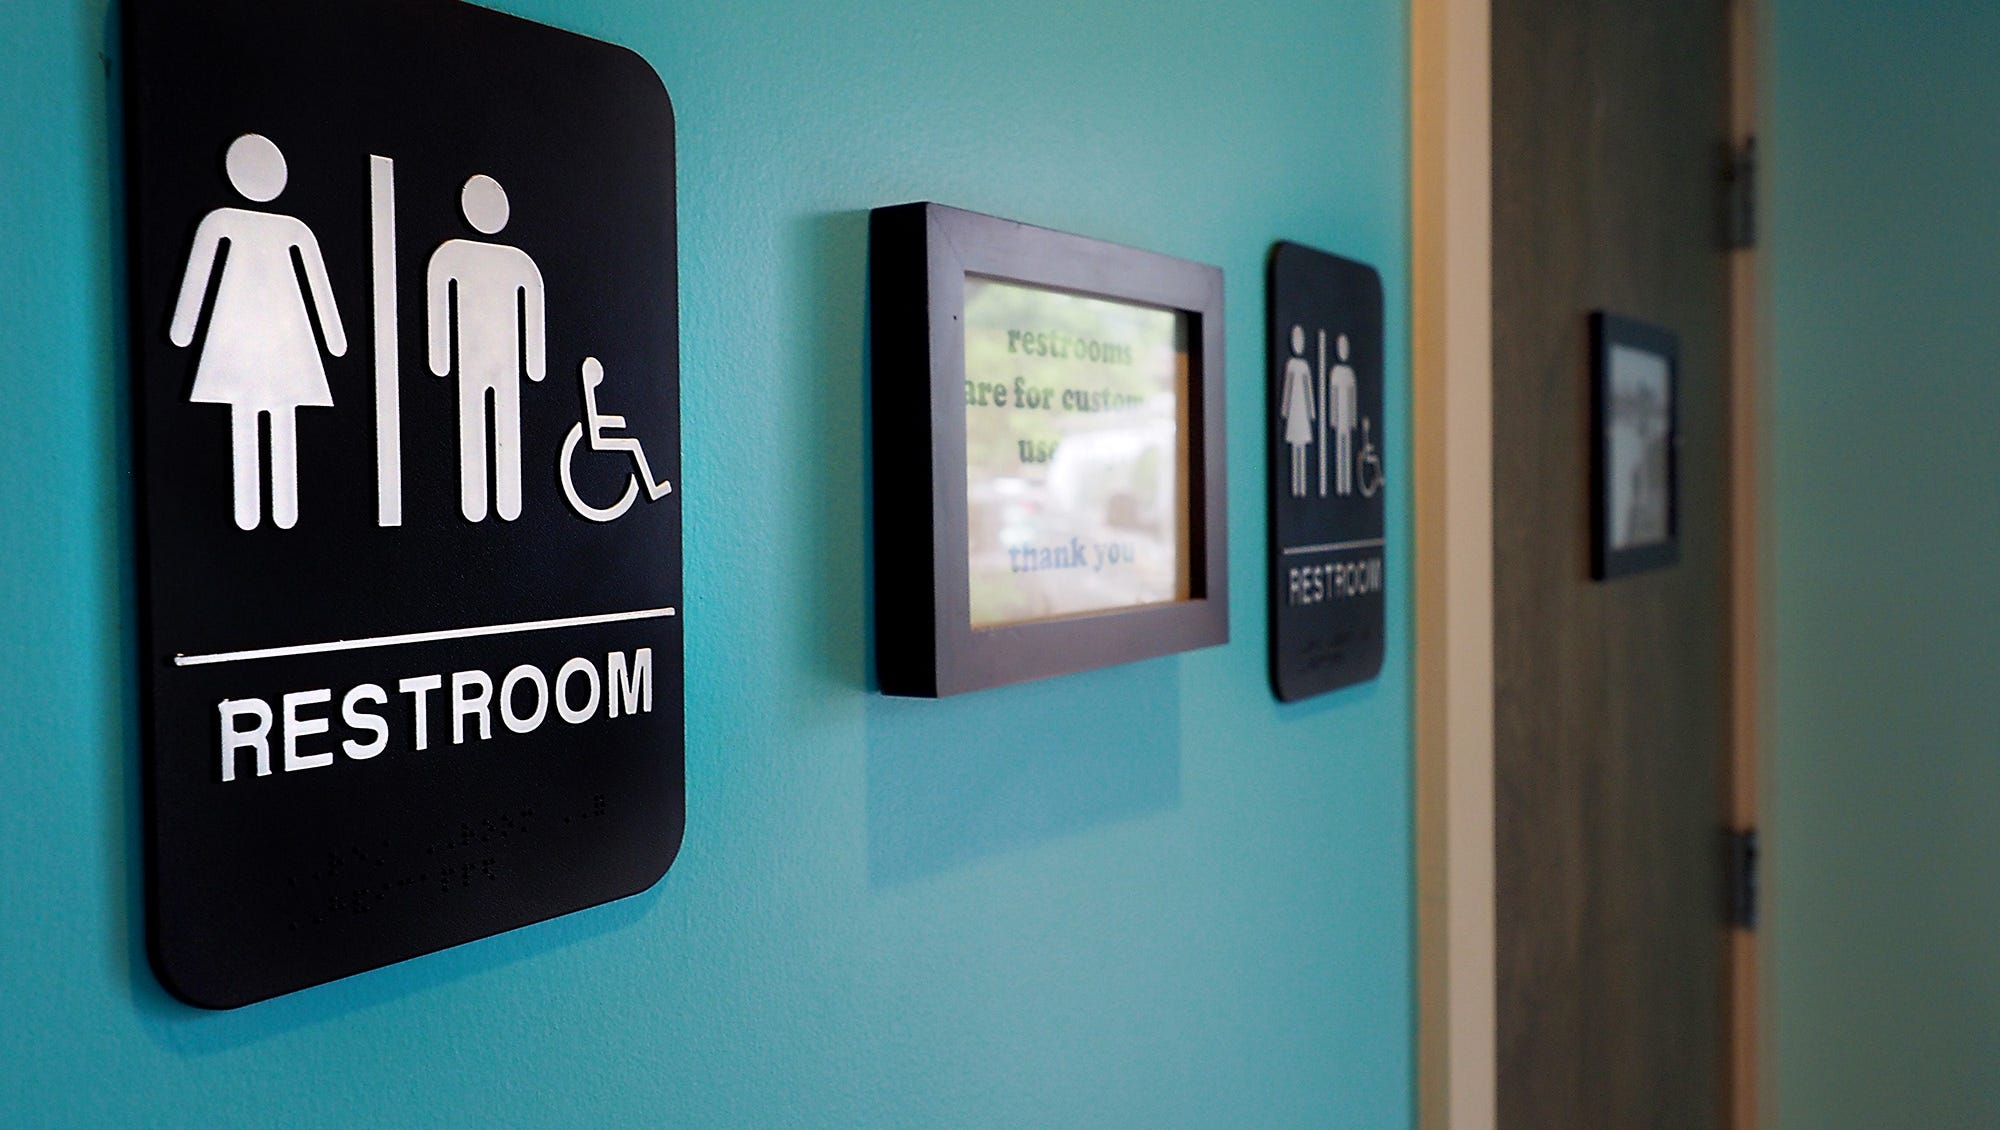 7th Circuit Affirms Bathroom Access for Trans Student